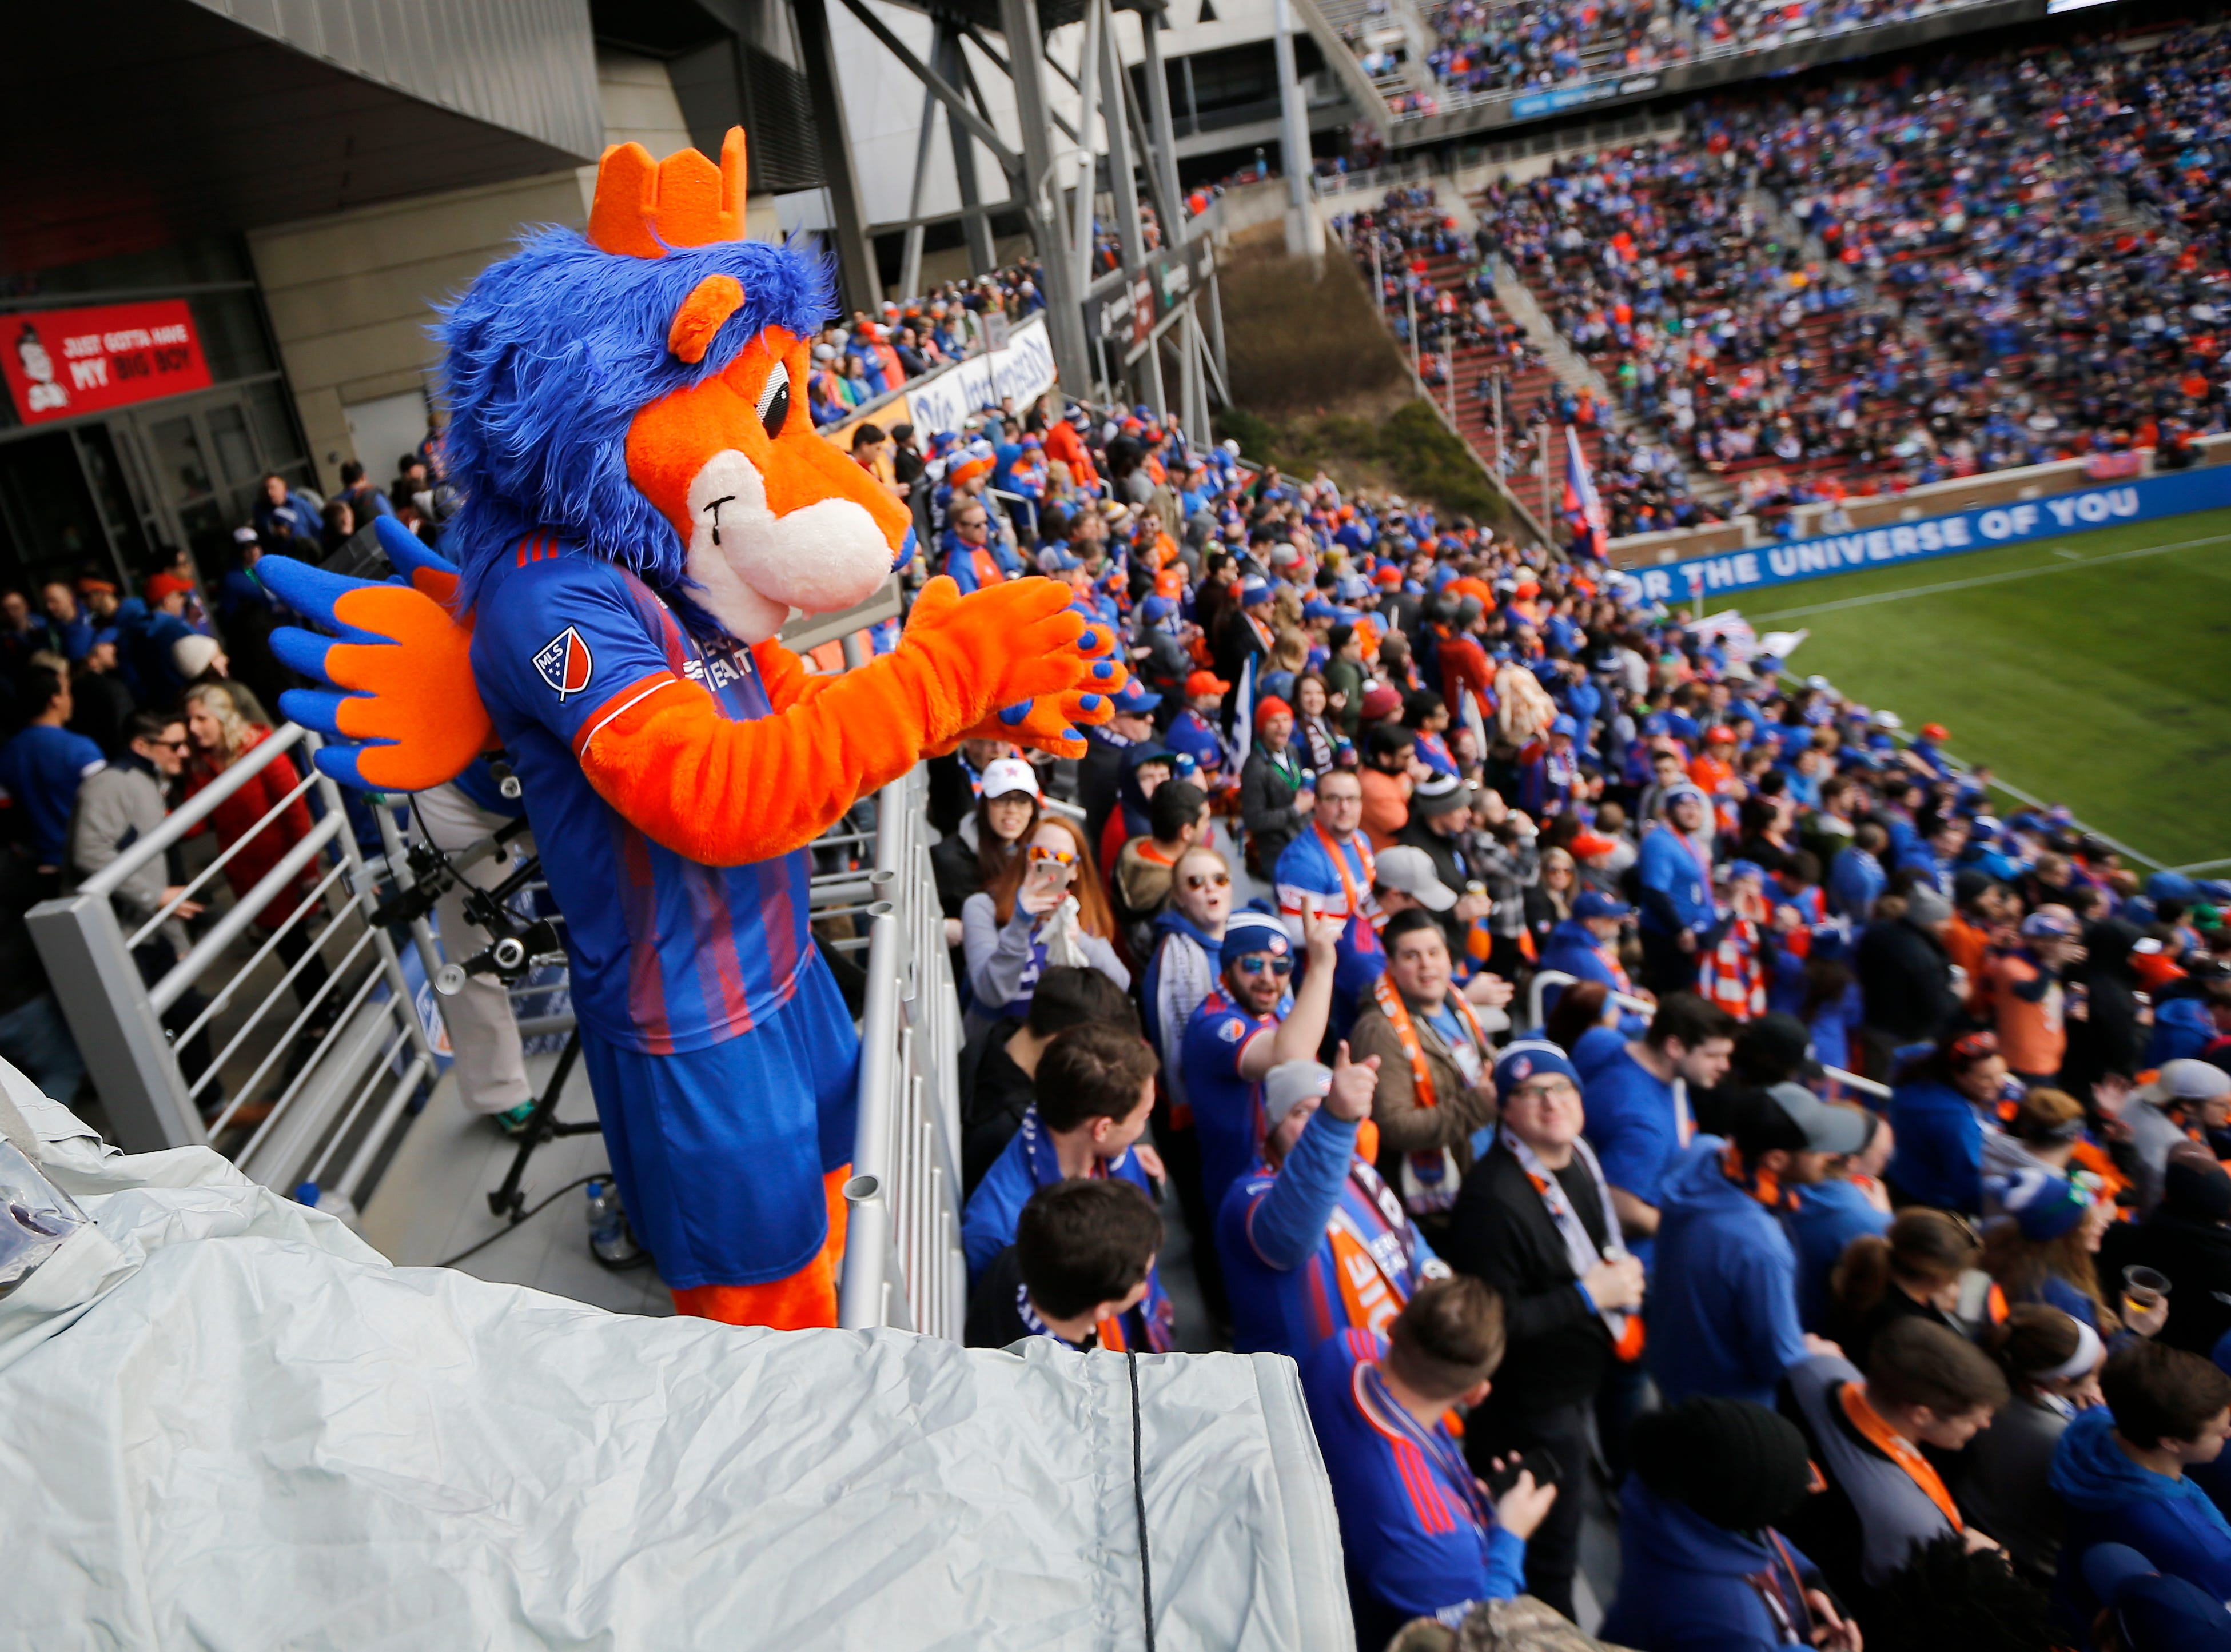 Gary the Lion cheers with fans from the top of the Bailey in the first half of the MLS match between FC Cincinnati and the Portland Timbers at Nippert Stadium in Cincinnati on Sunday, March 17, 2019. FC Cincinnati led 1-0 at halftime.